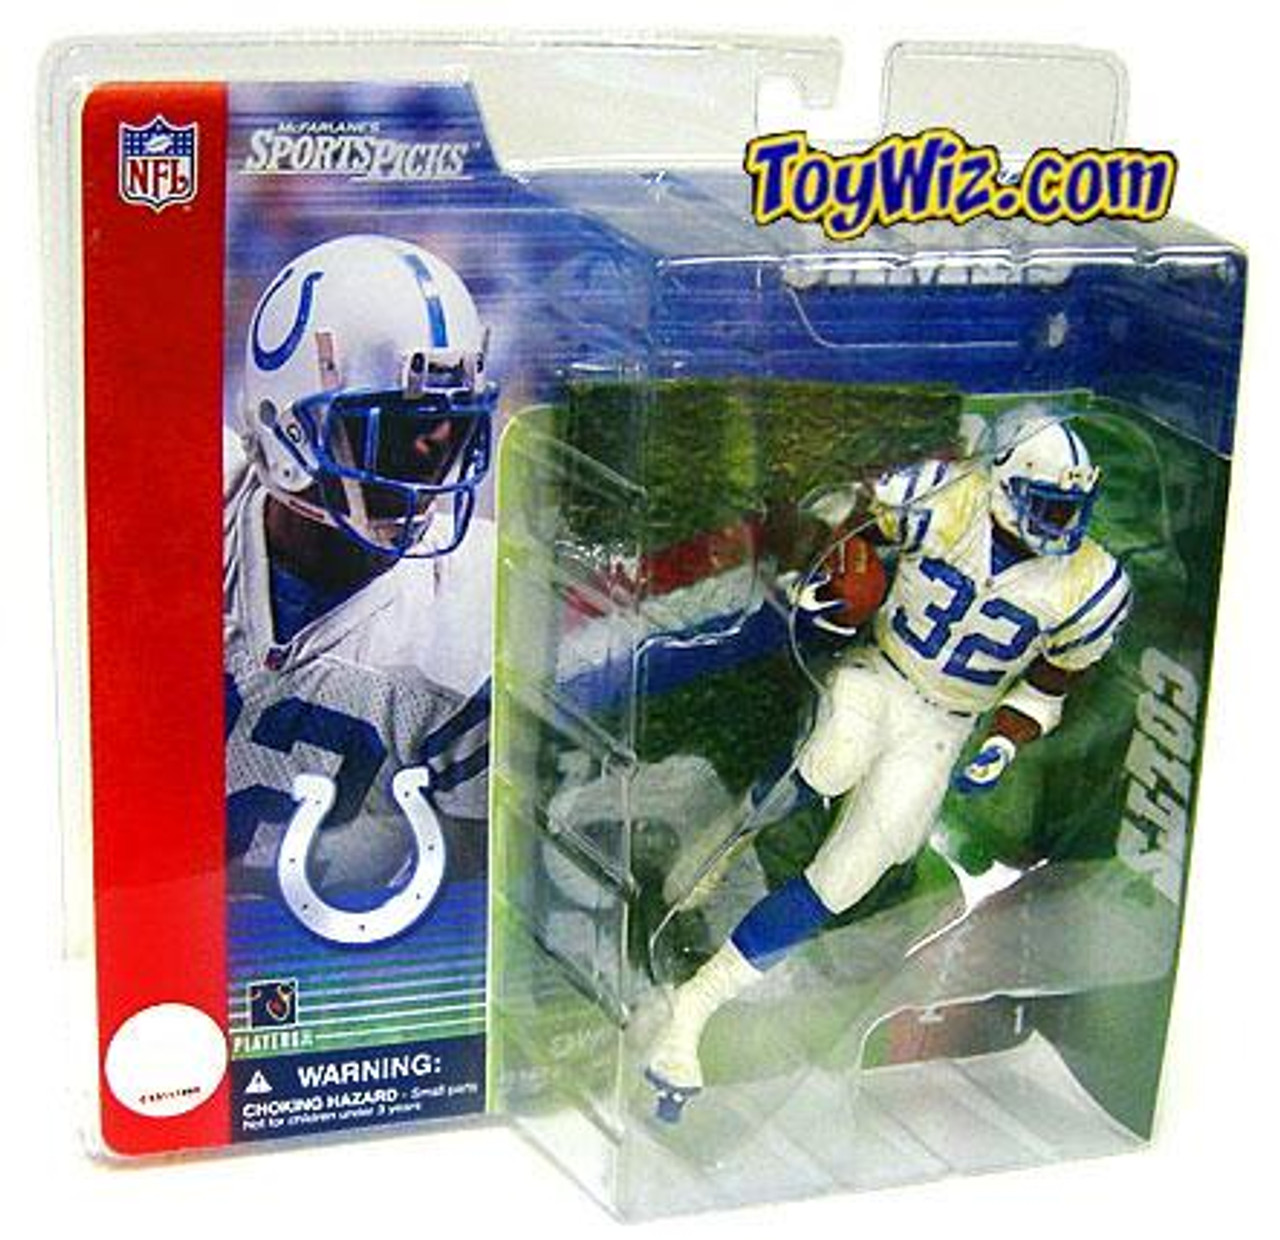 McFarlane Toys NFL Indianapolis Colts Sports Picks Series 1 Edgerrin James Action Figure [White Jersey]